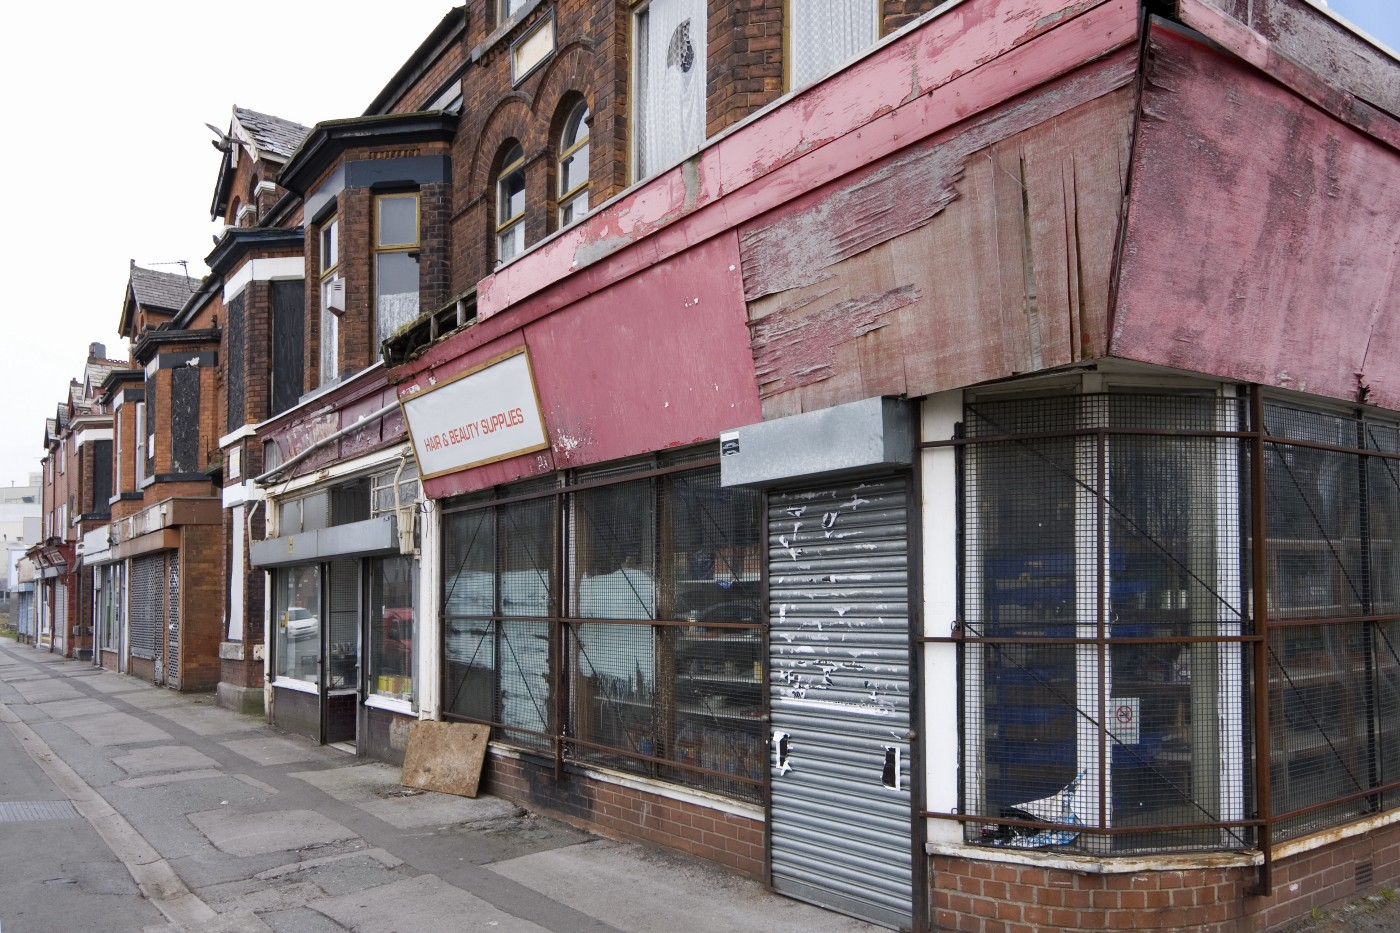 A row of shops that are boarded up on a street corner.